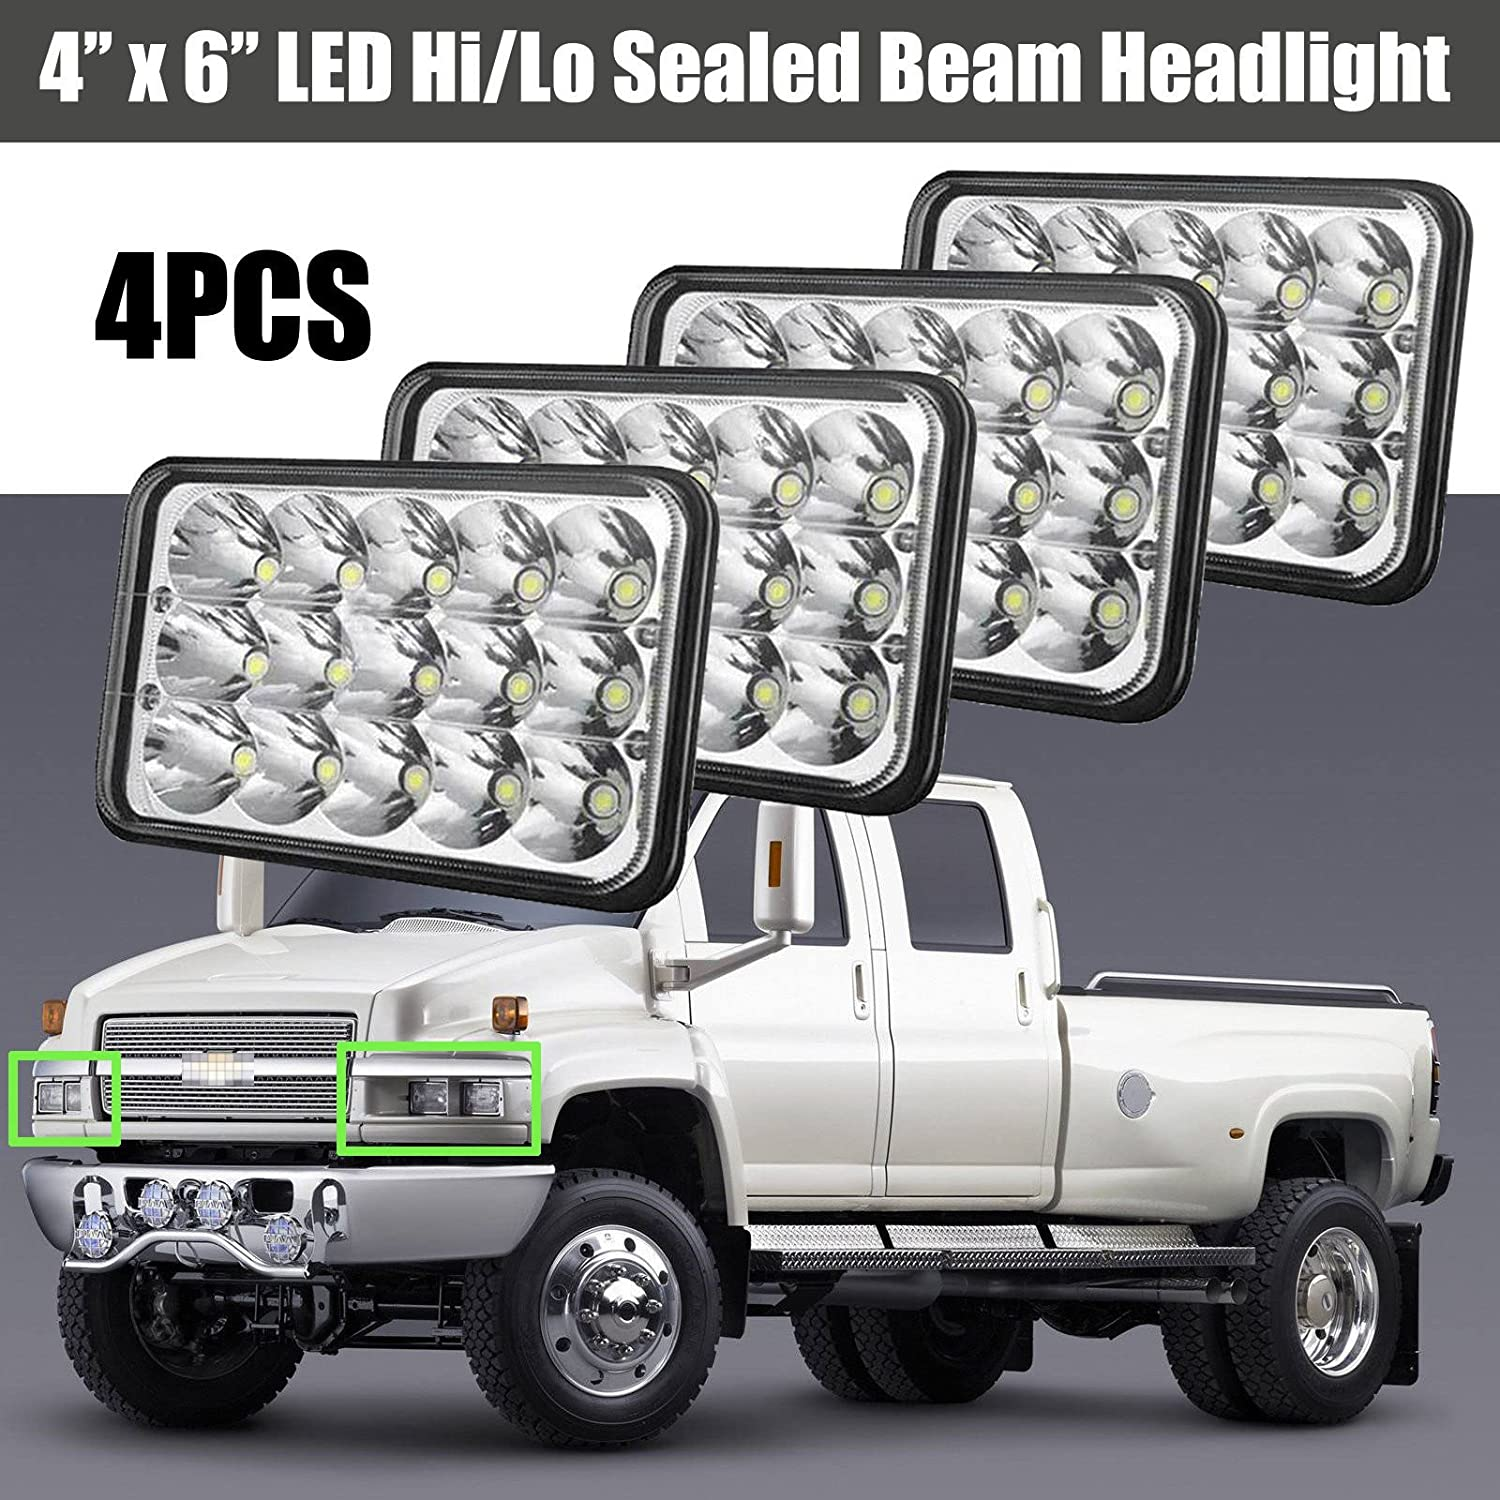 4x6 Led Headlights For Chevrolet Chevy C4500 C5500 2003 Gmc Headlight Wiring Diagram Kodiak Rectangular High Low Sealed Beam Bright Lights To Replace H4651 H4652 H4656 H4666